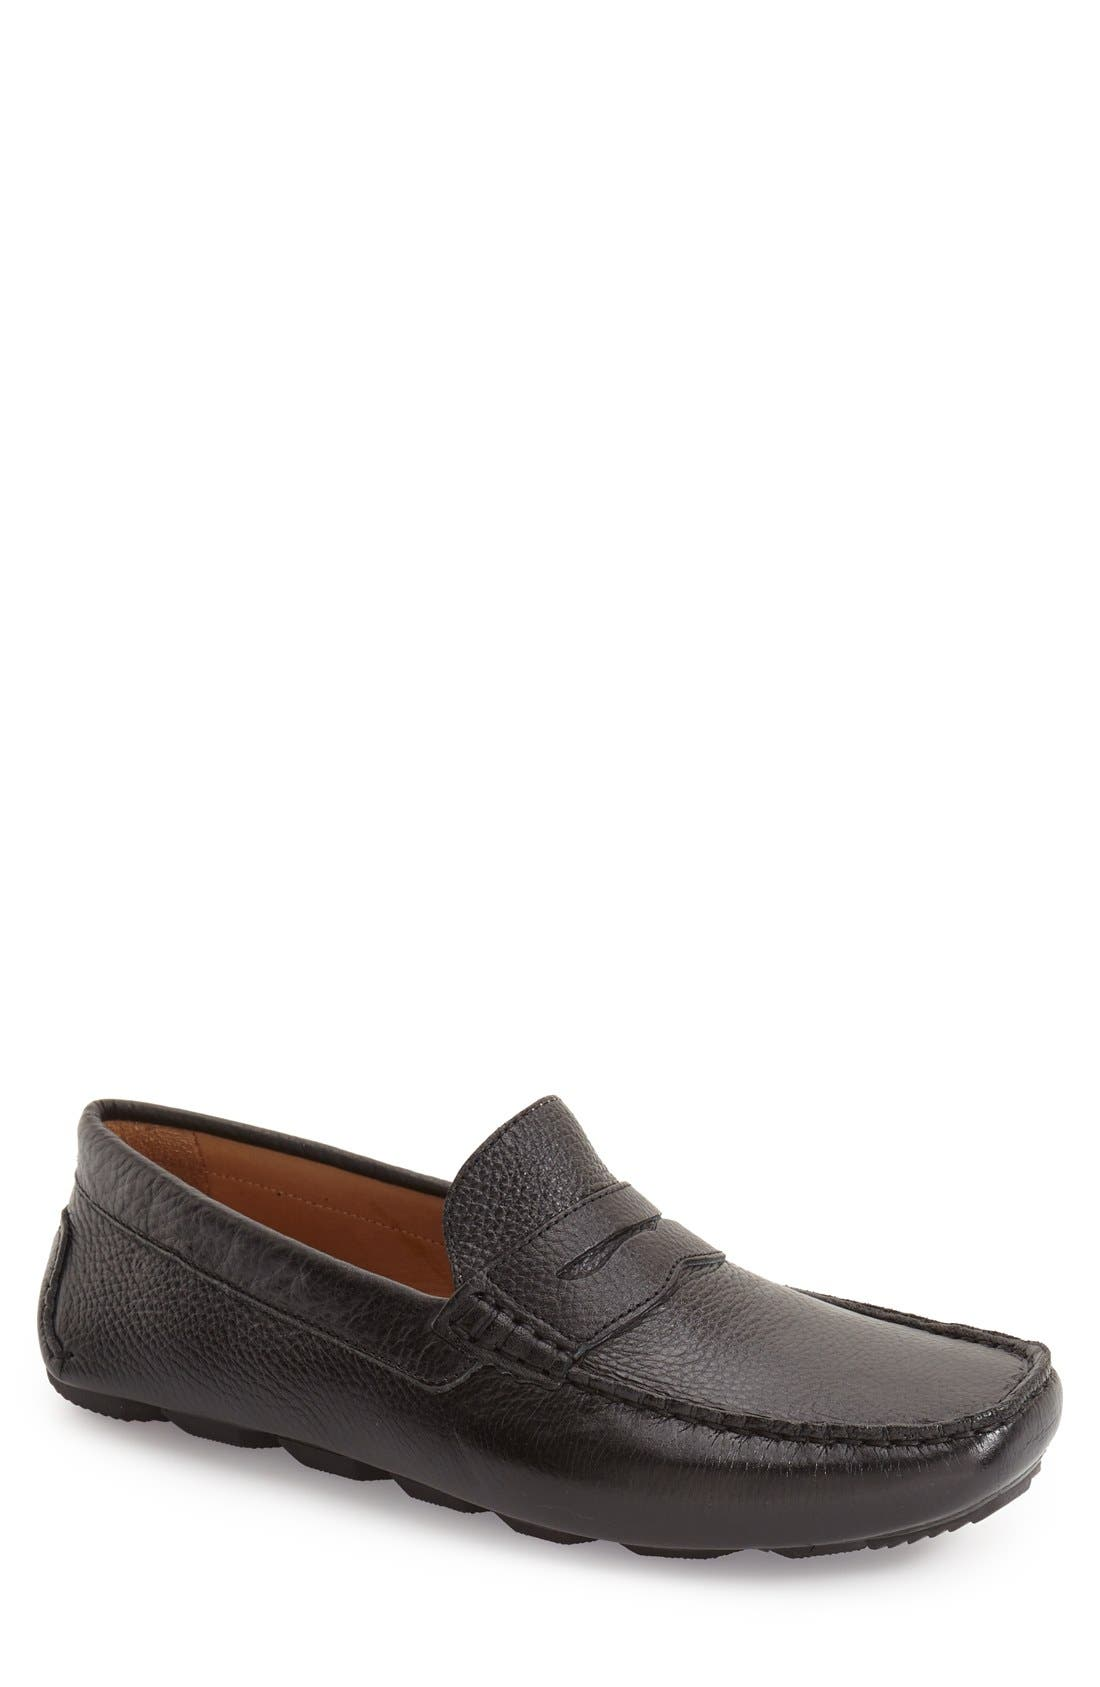 'Bermuda' Penny Loafer,                             Main thumbnail 1, color,                             Black Leather